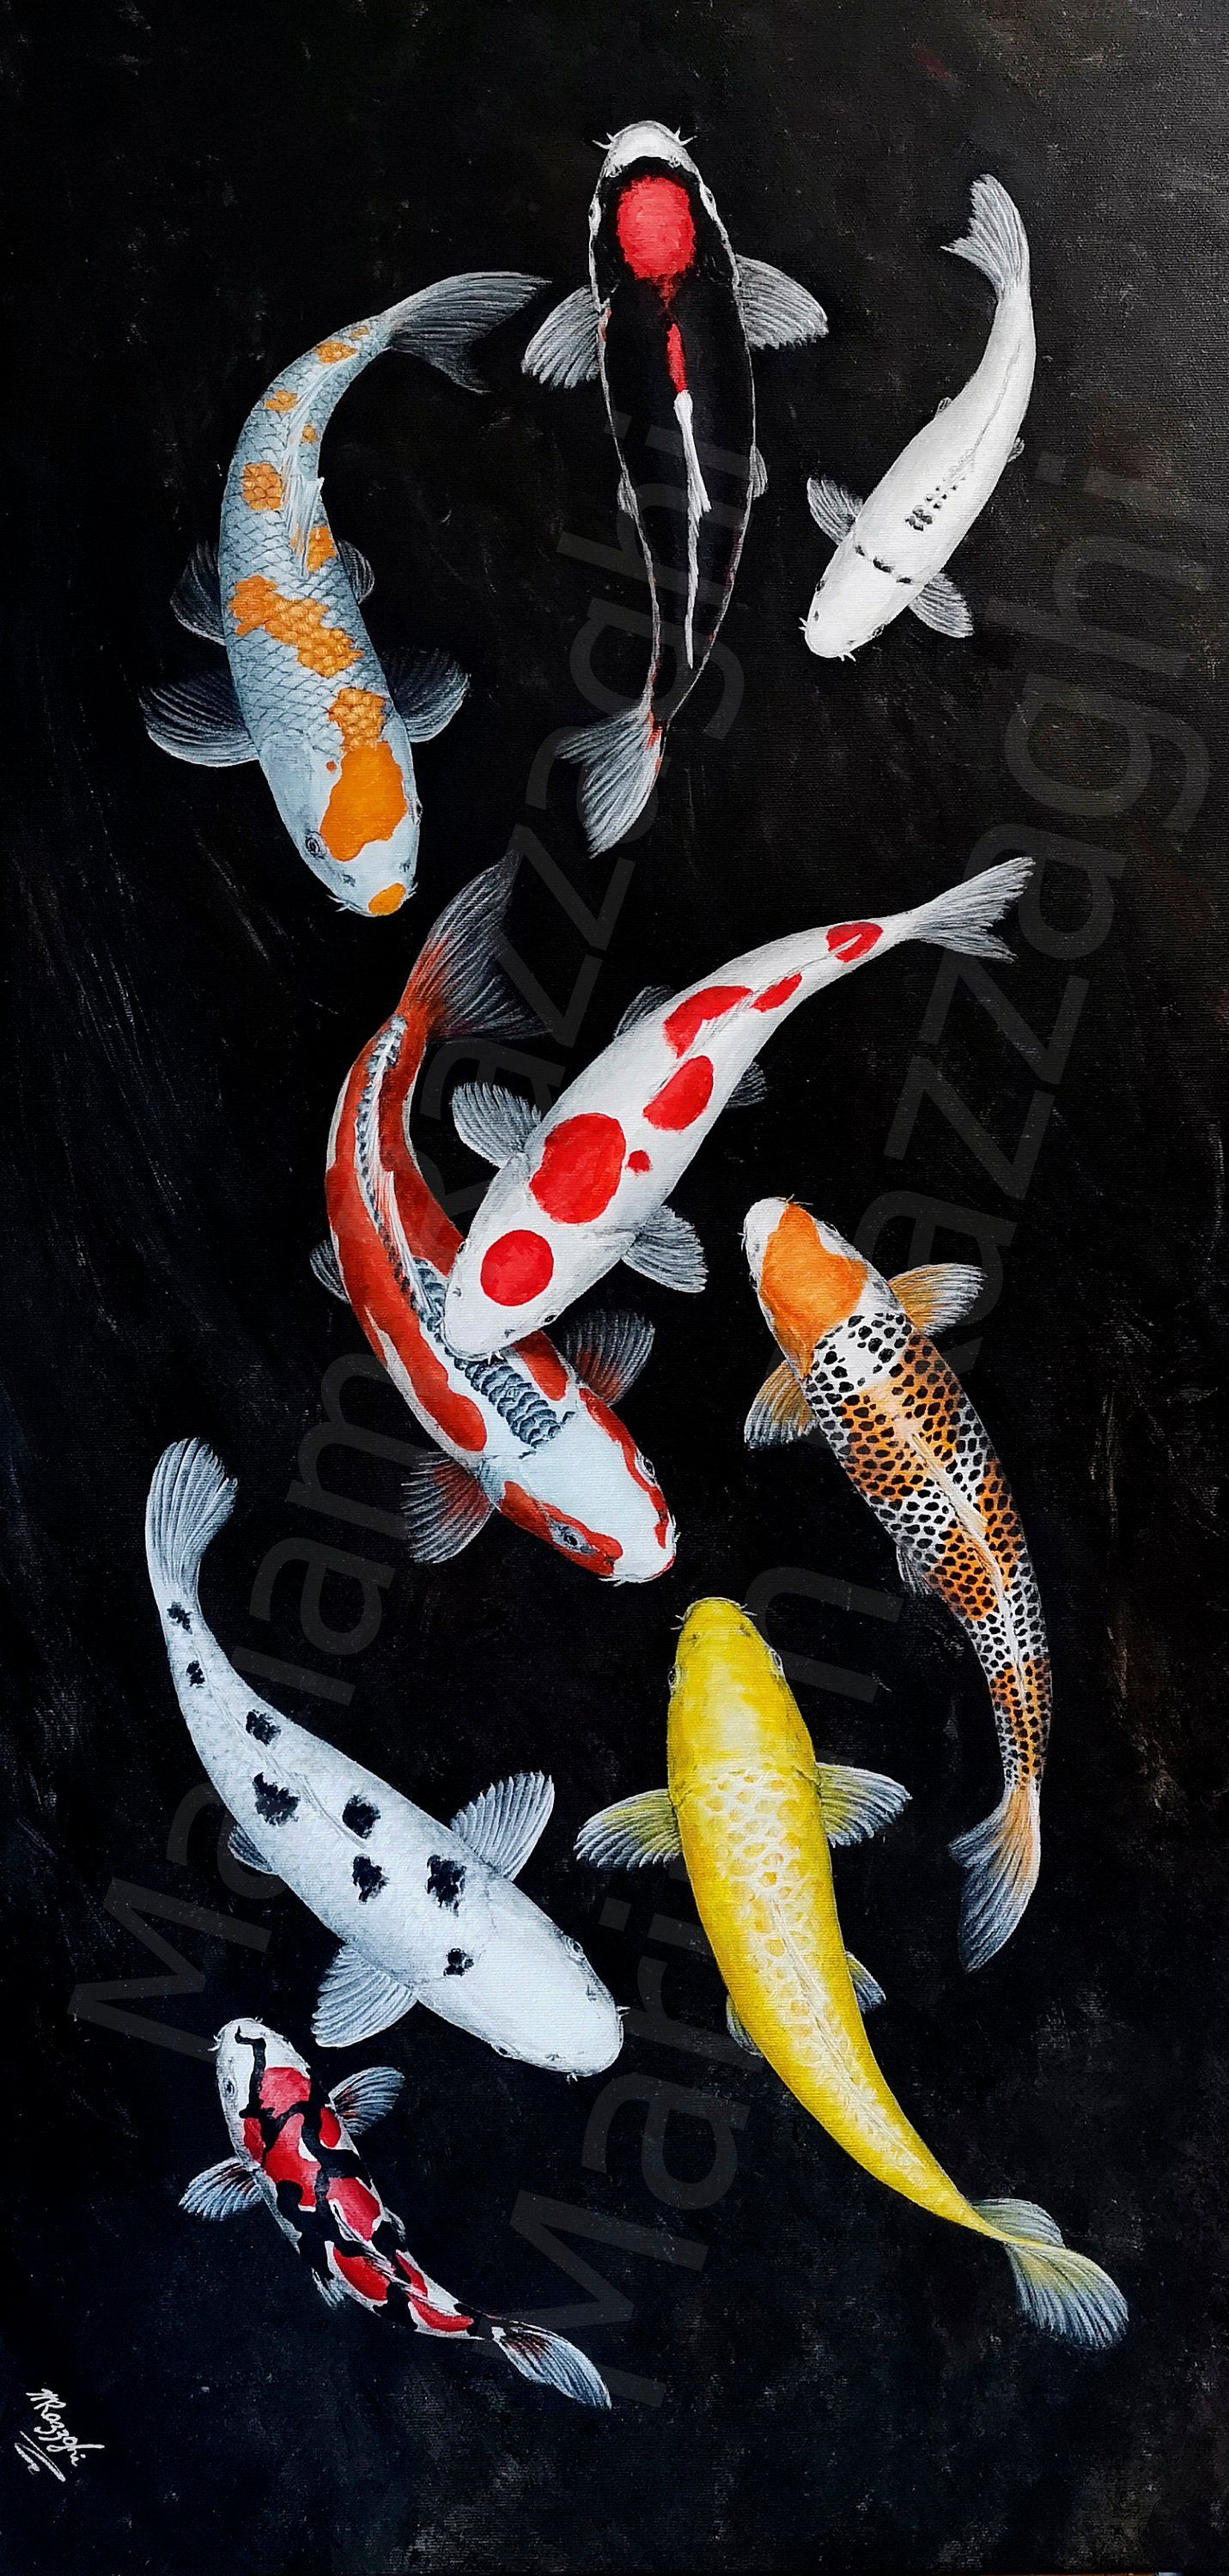 Koi Original Painting By Mariam Razzaghi Lucky 9 Mix 50x100cm Images, Photos, Reviews